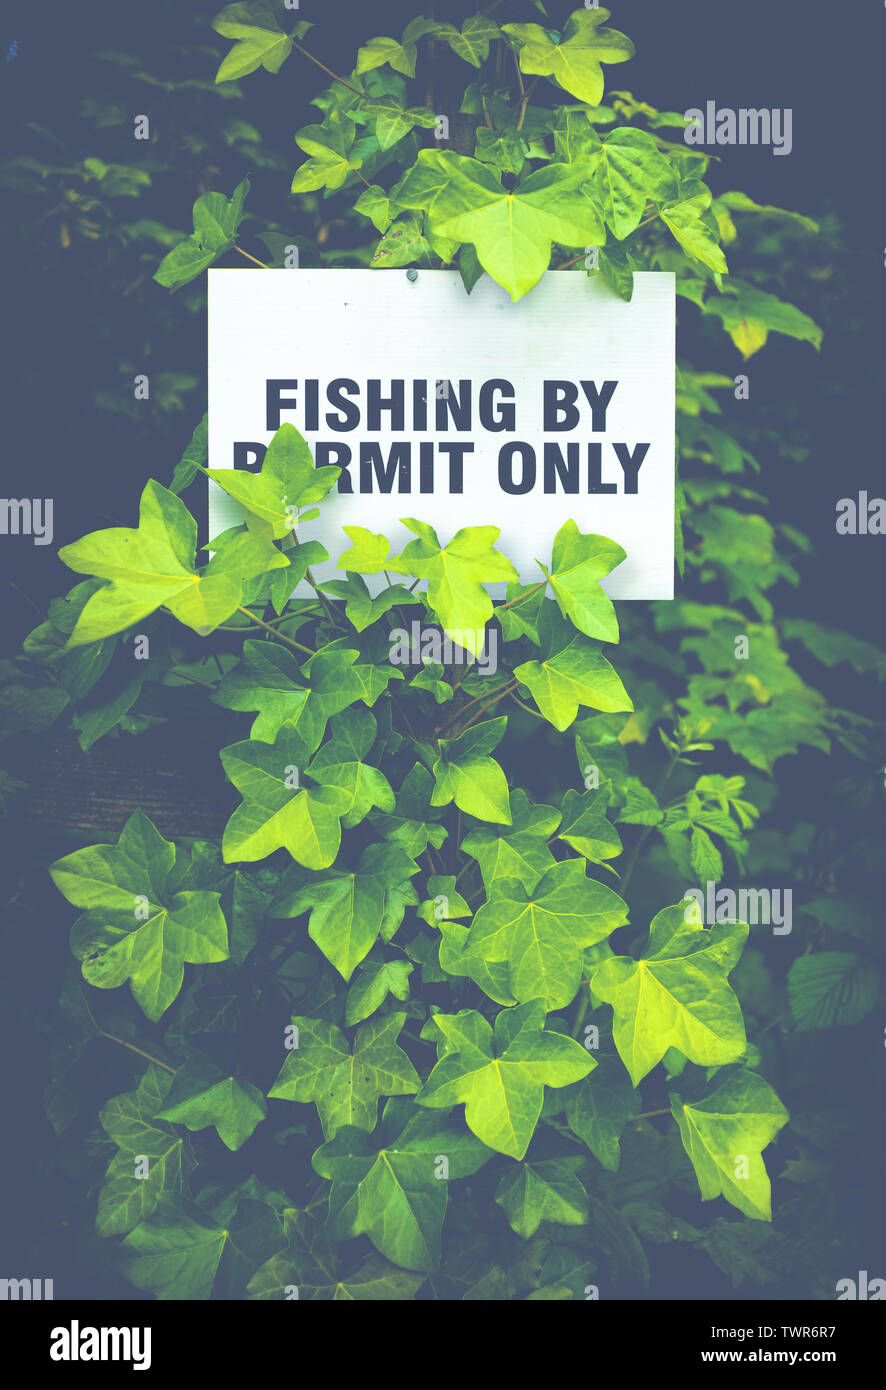 Fishing By Permit Only Sign Hidden In The Foliage By A Scottish River Stock Photo